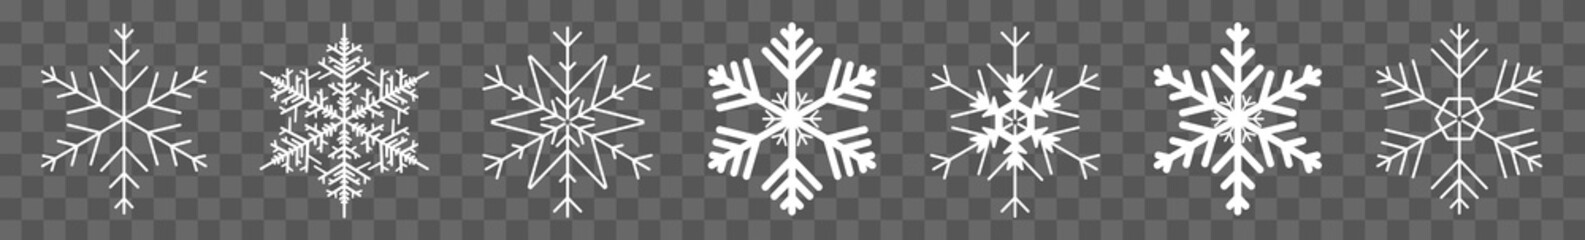 Snowflake Icon White | Snowflakes | Ice Crystal Winter Symbol | Christmas Logo | Xmas Sign | Isolated Transparent | Variations Wall mural